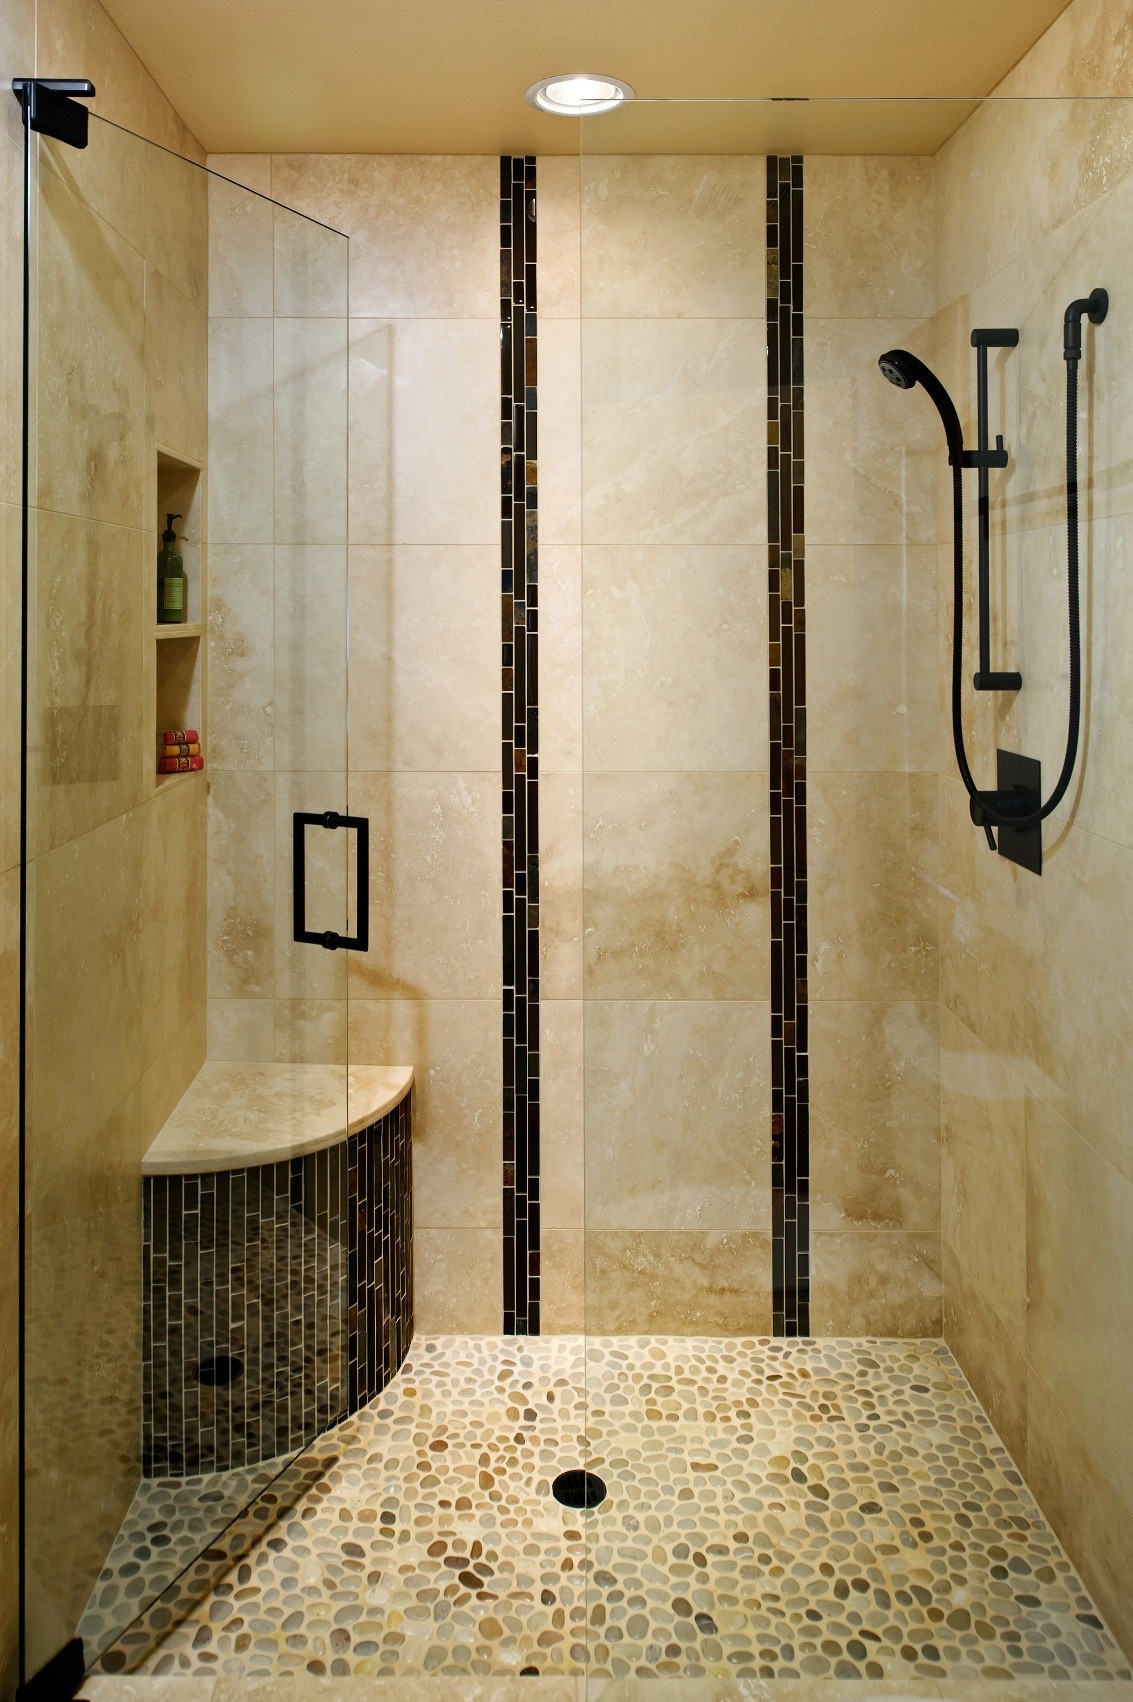 Marble Tile Walk In Shower For Good Bathroom Remodel Ideas Be Equipped With Bathtub Shower With Faucet Bronze And Window Treatment Ideas And Also Paint The Wall Brown Color Bathroom Tiles For Small Bathroom Inspiration Home Magazine